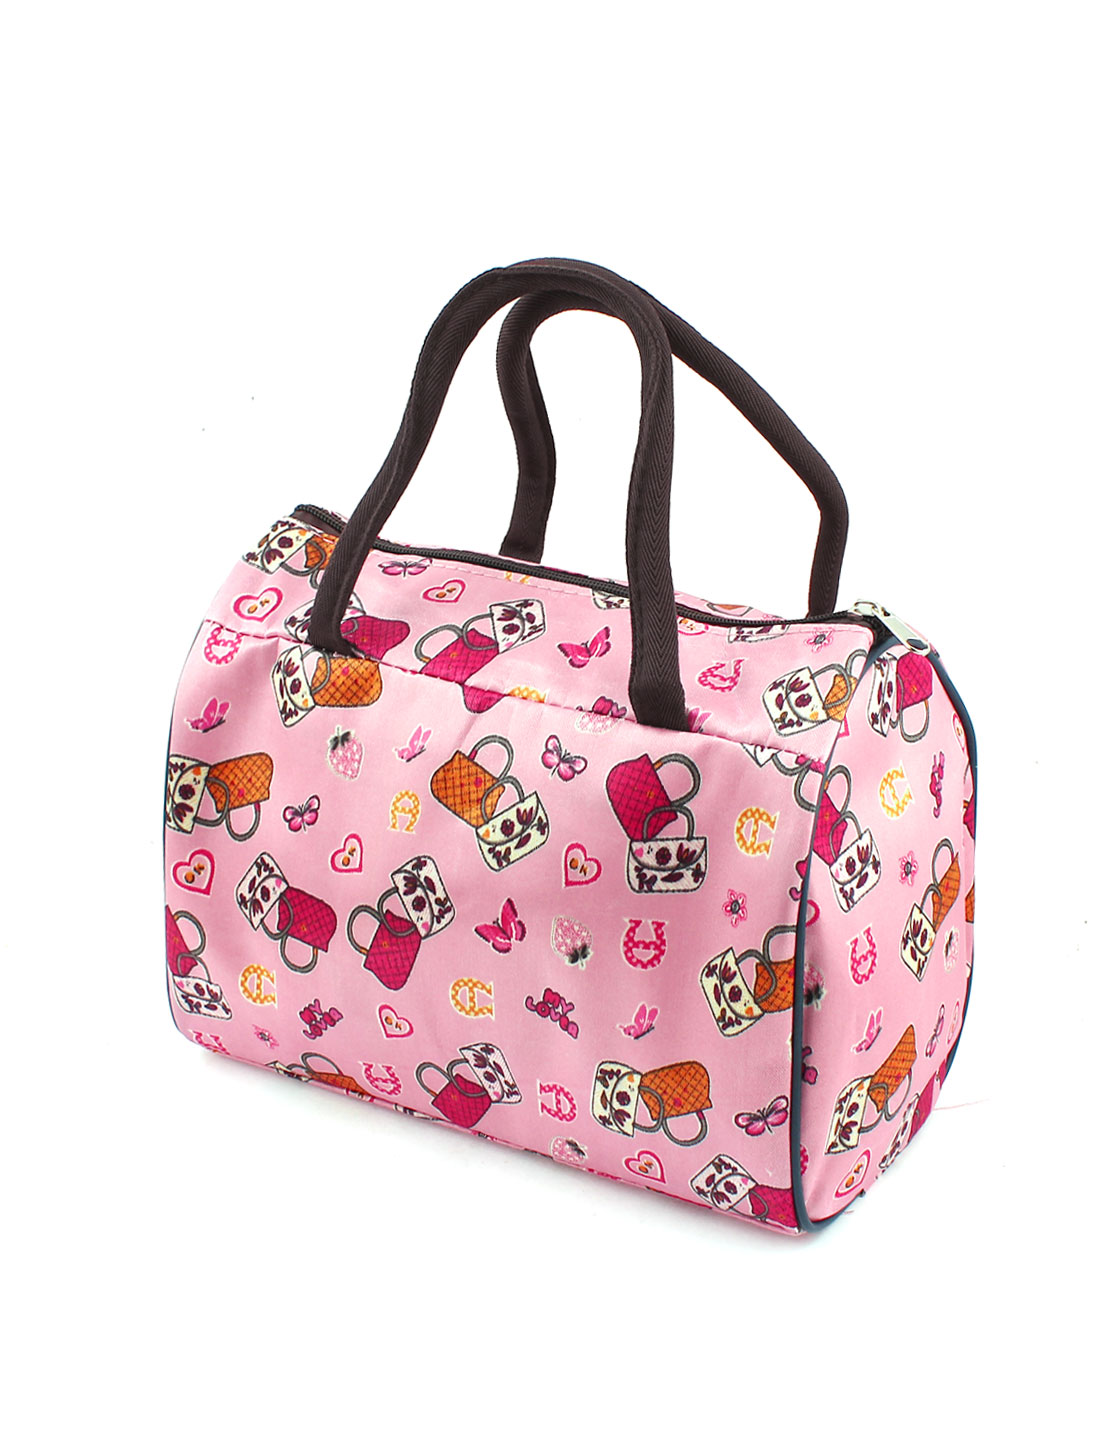 Lady Multicolor Strawberry Butterfly Print Make Up Case Handbag Pink